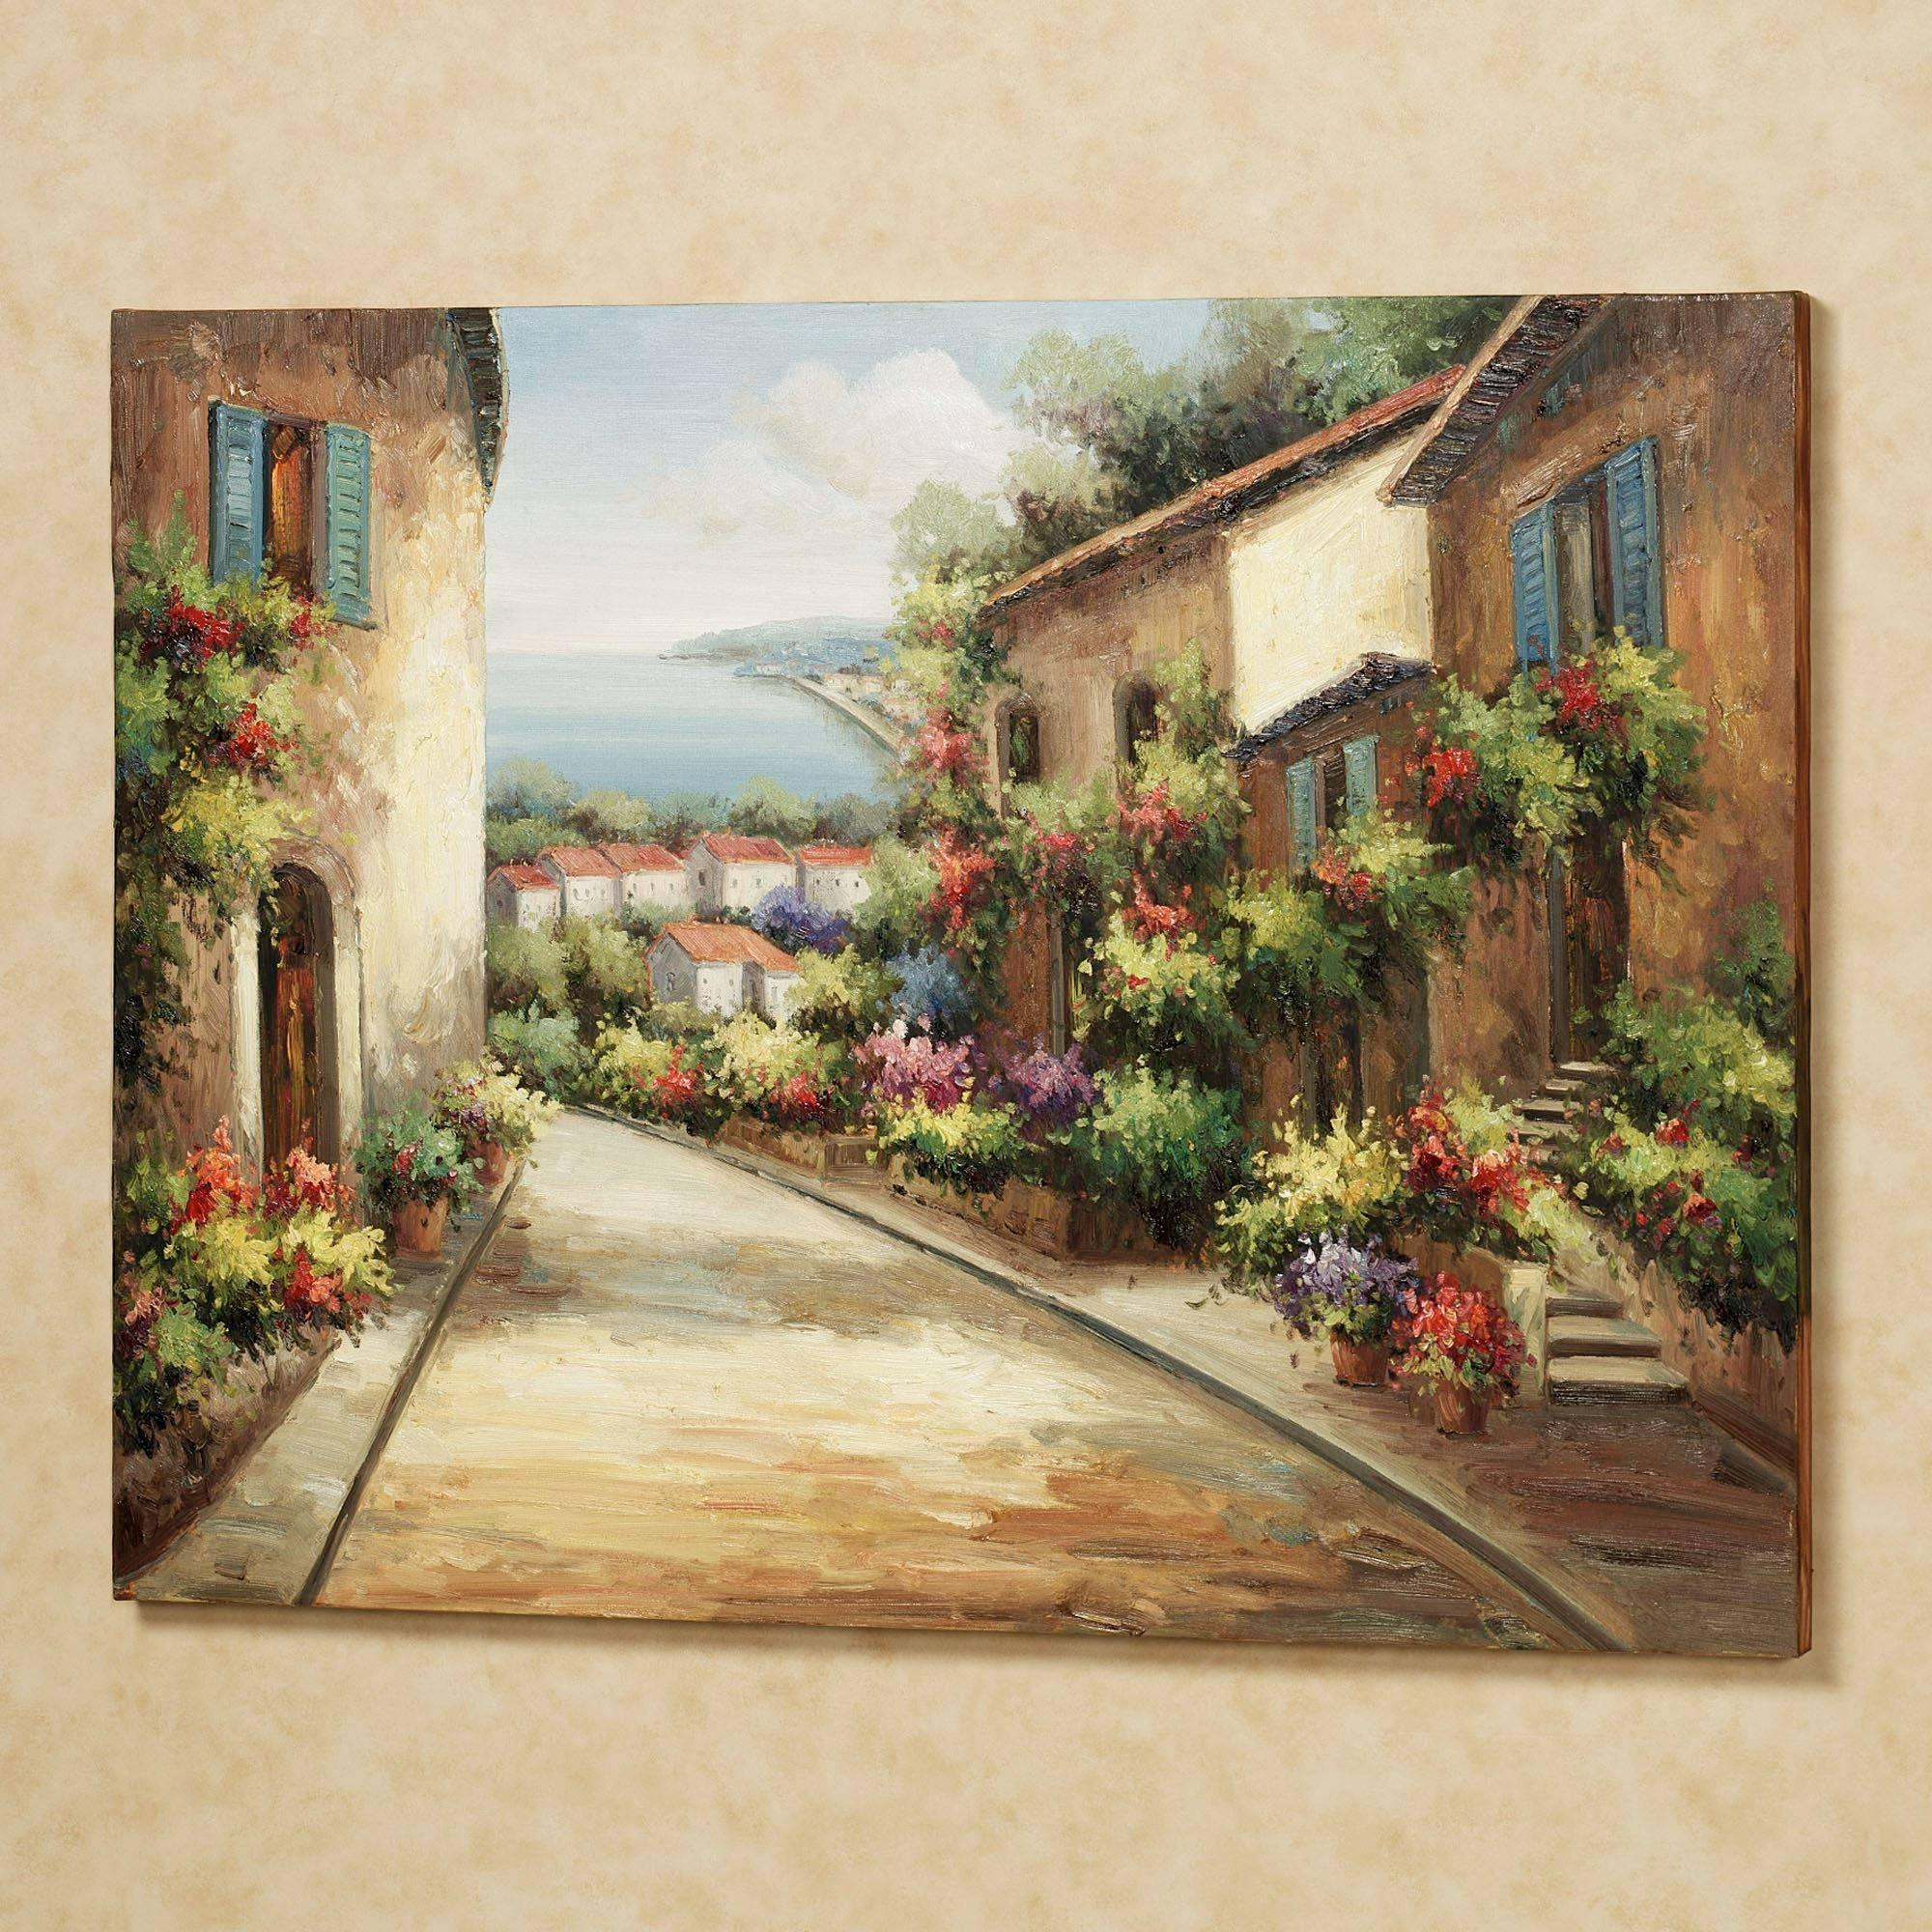 Streets Of Tuscany Canvas Wall Art In Most Up To Date Tuscan Wall Art Decor (View 5 of 20)